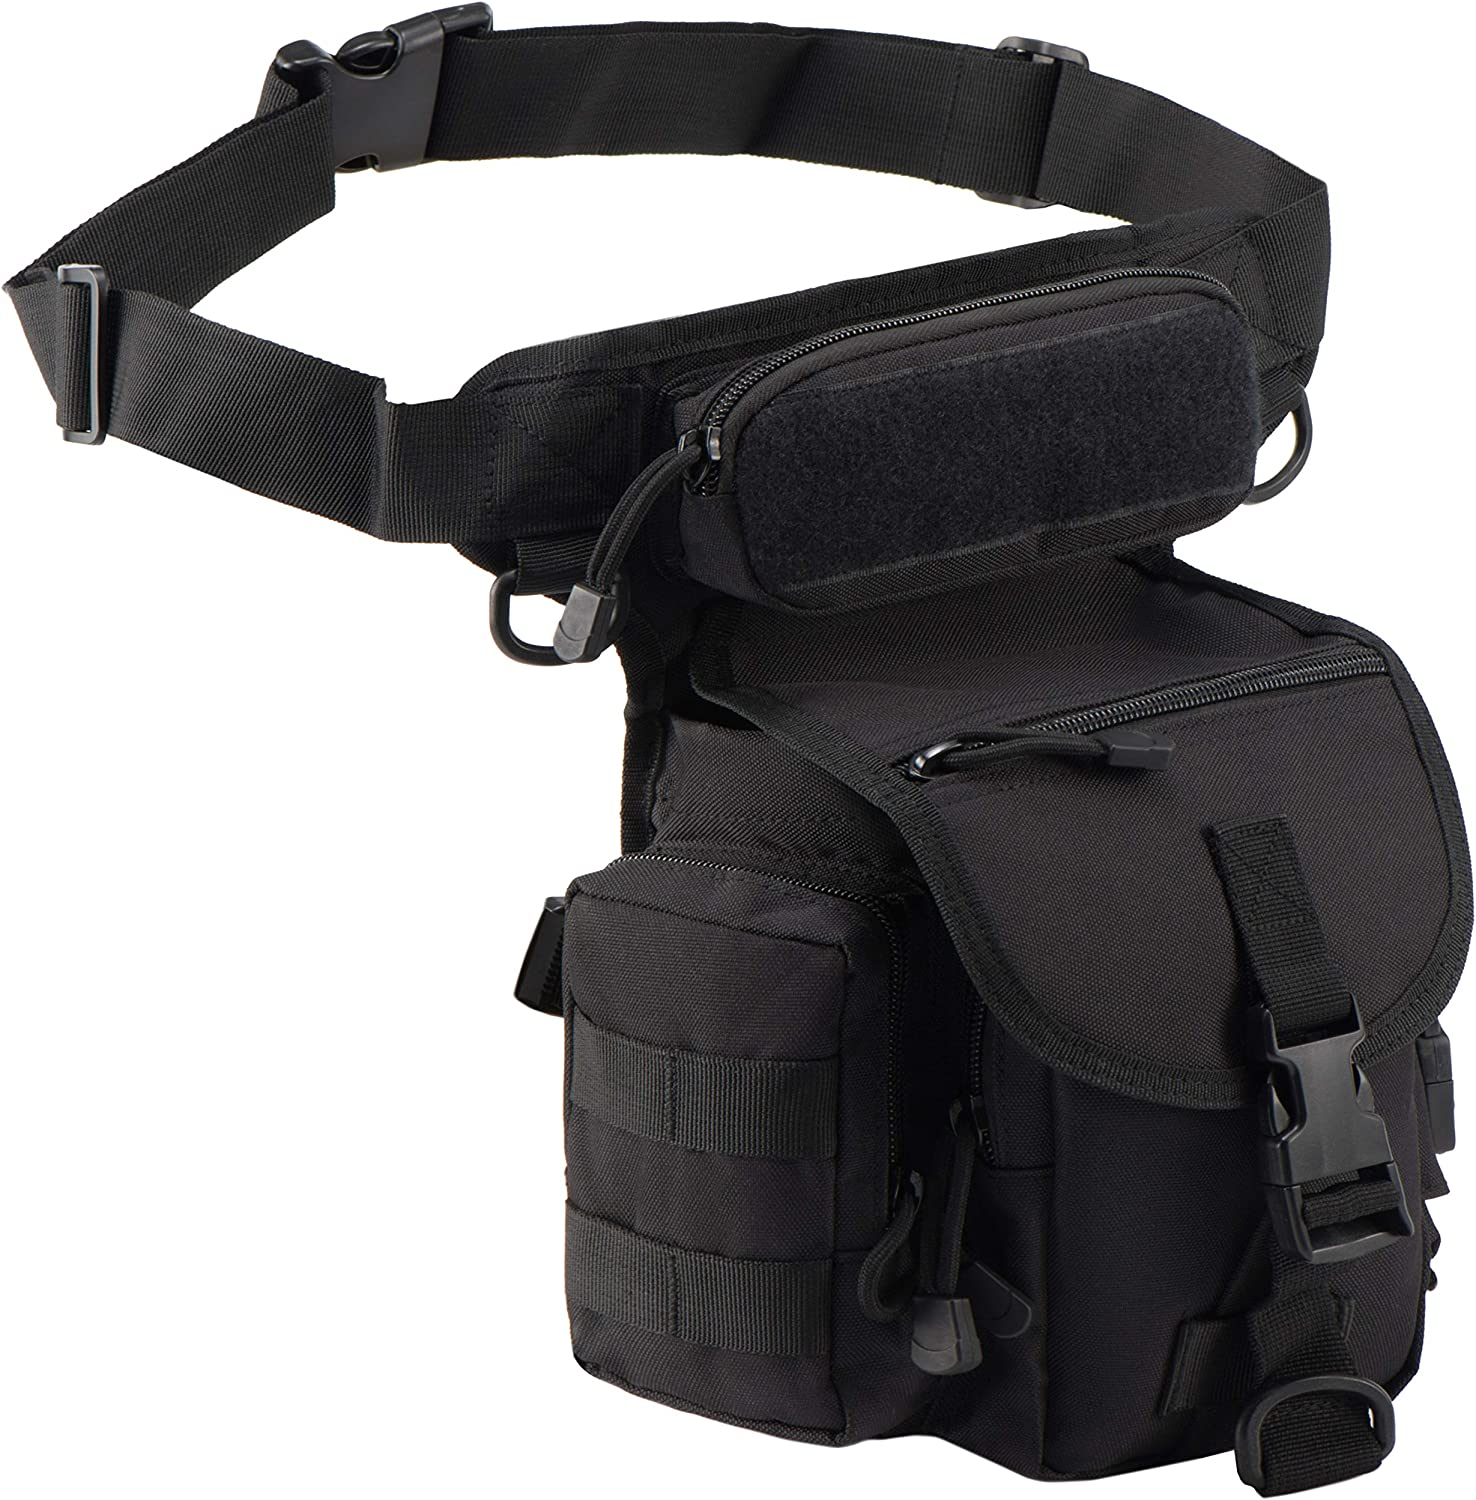 Image of a black leg bag attached to a waistband, buckle lock front flap